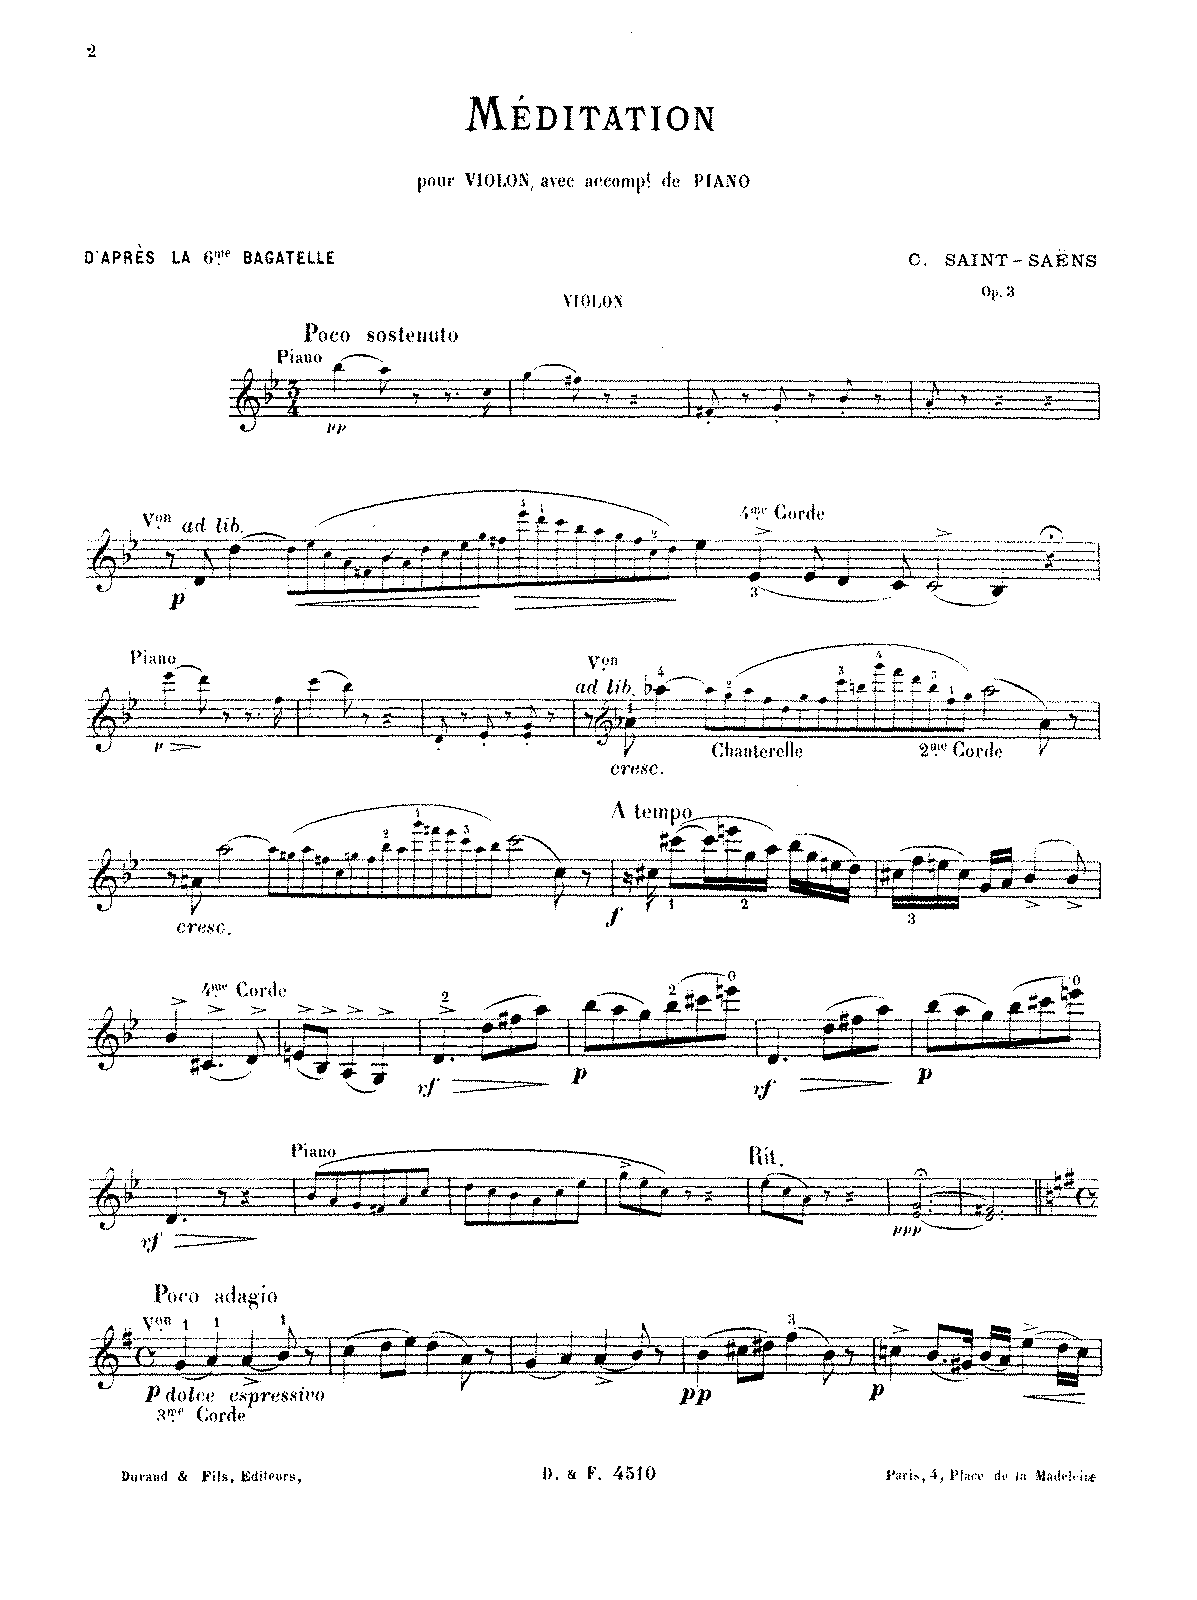 PMLP67515-Saint-Saëns - Méditation d'après la 6ème Bagatelle Op. 3 (violin and piano).pdf